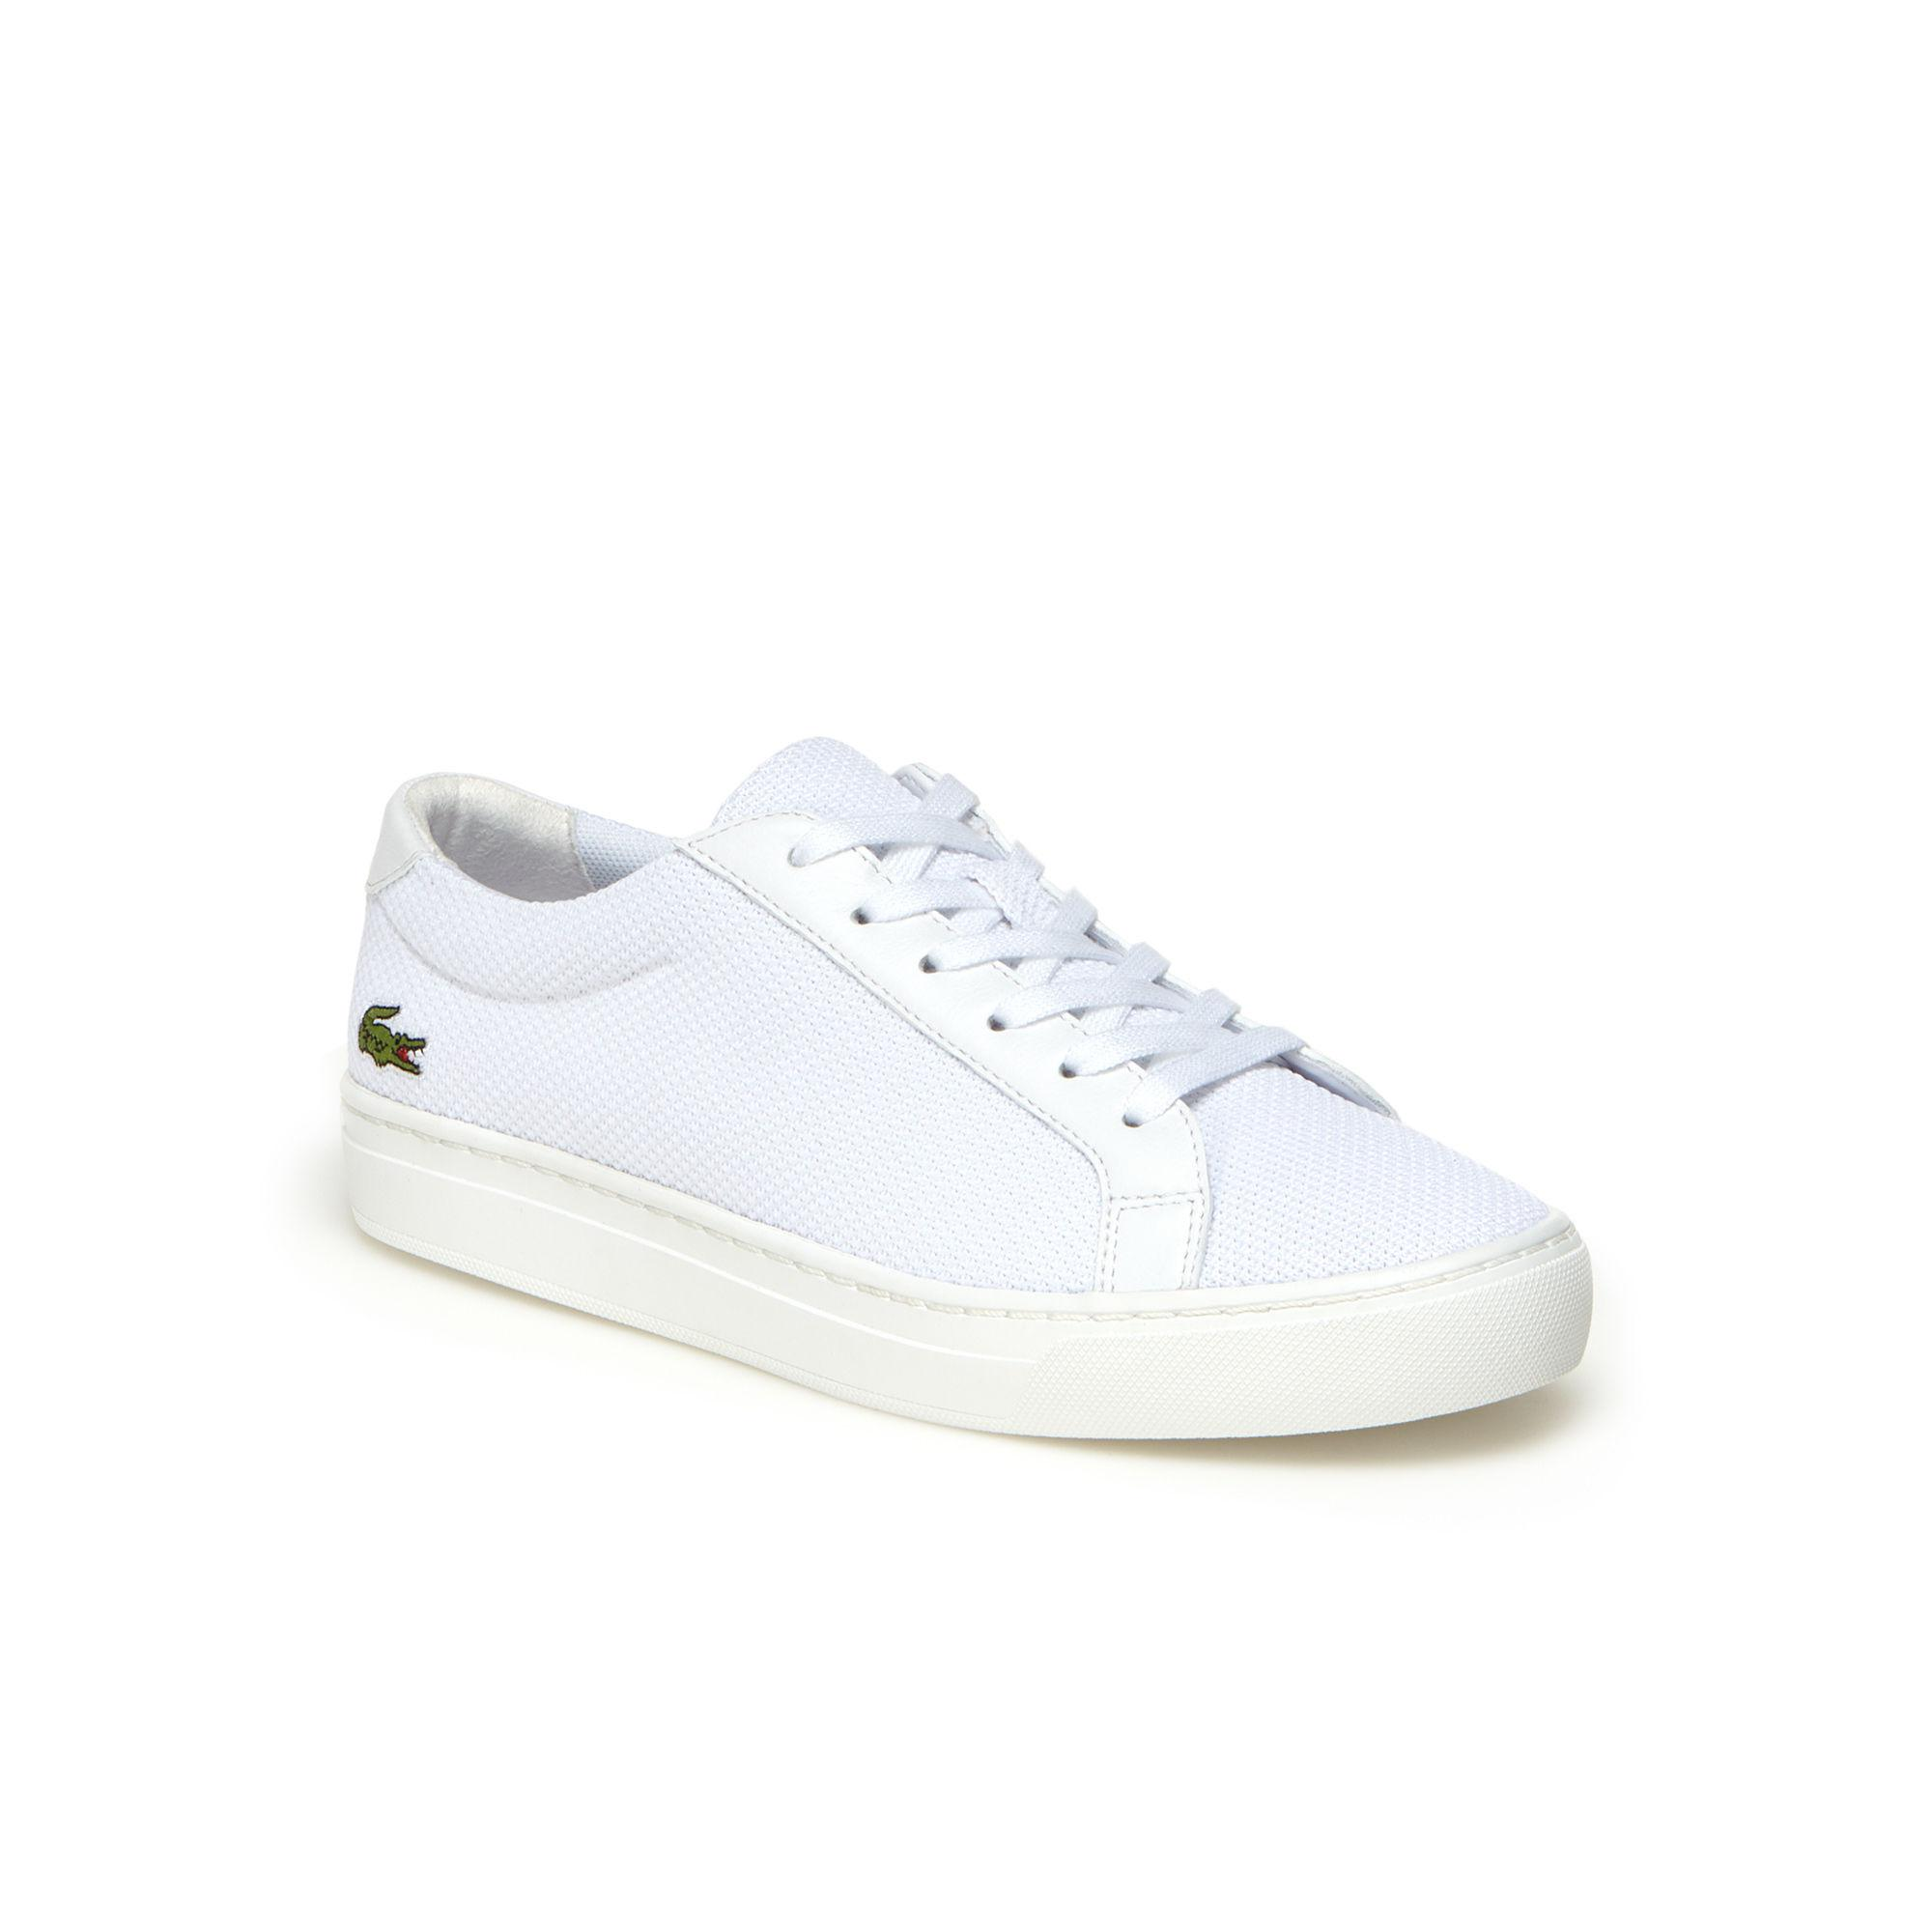 8a1f00433 Lacoste. Women s White Children s L.12.12 Bl Textile And Leather Trainers